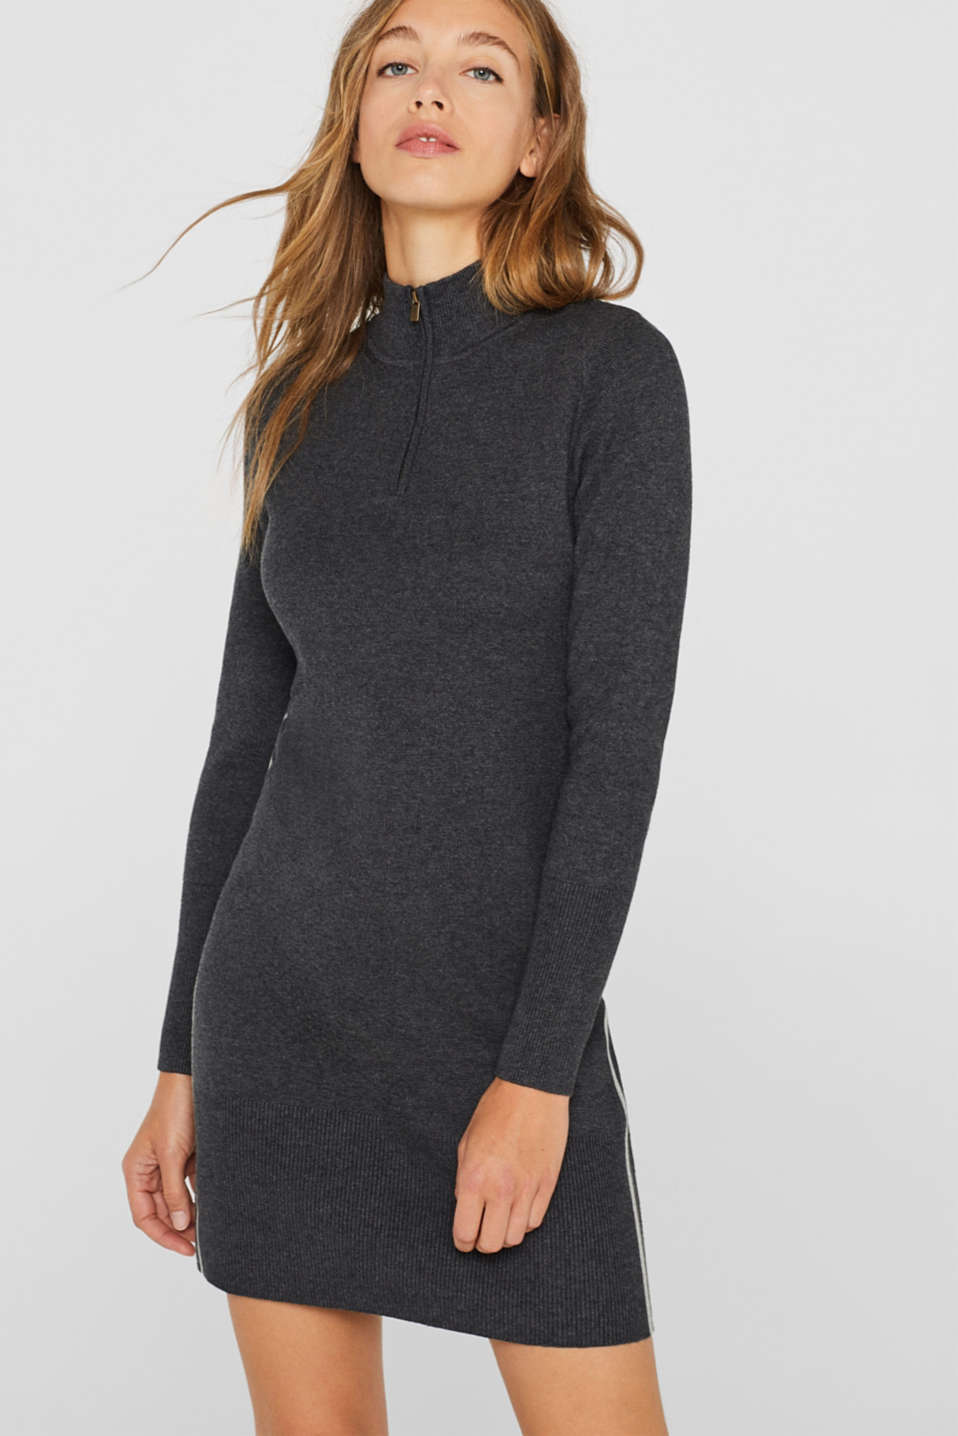 Knit dress with a zip-up band collar, GUNMETAL 5, detail image number 0